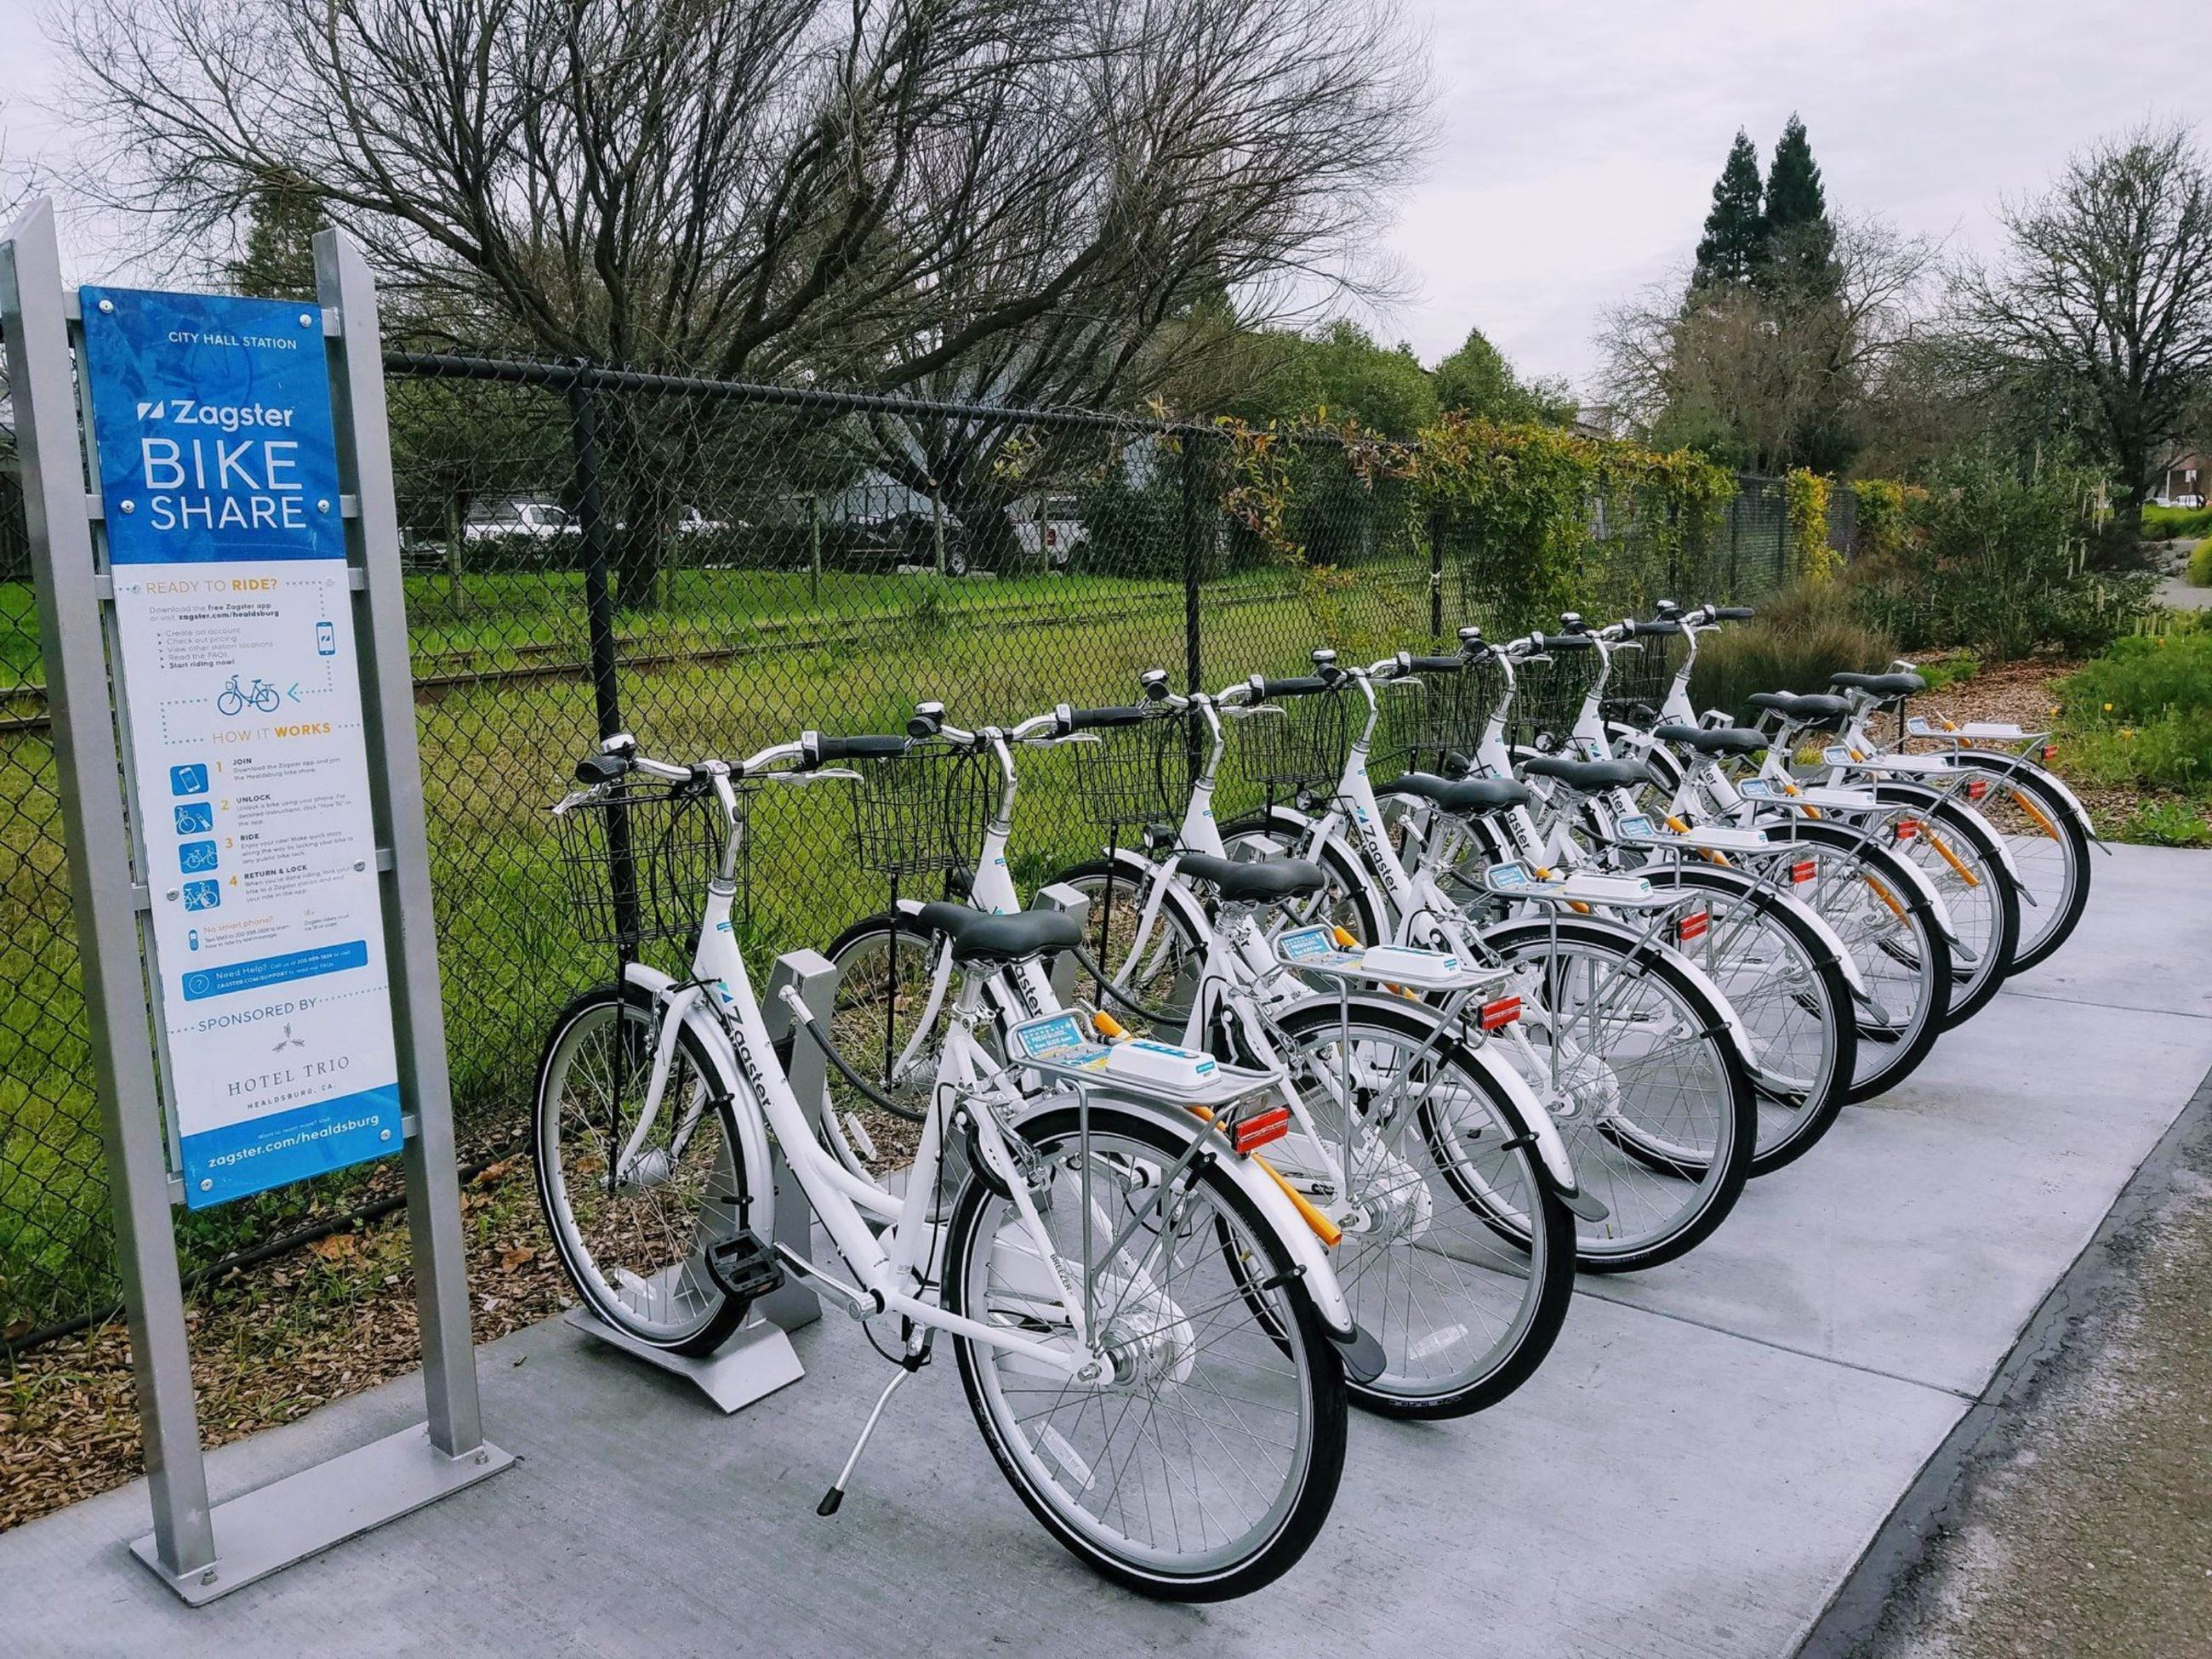 Zagster bicycles at bike-share station